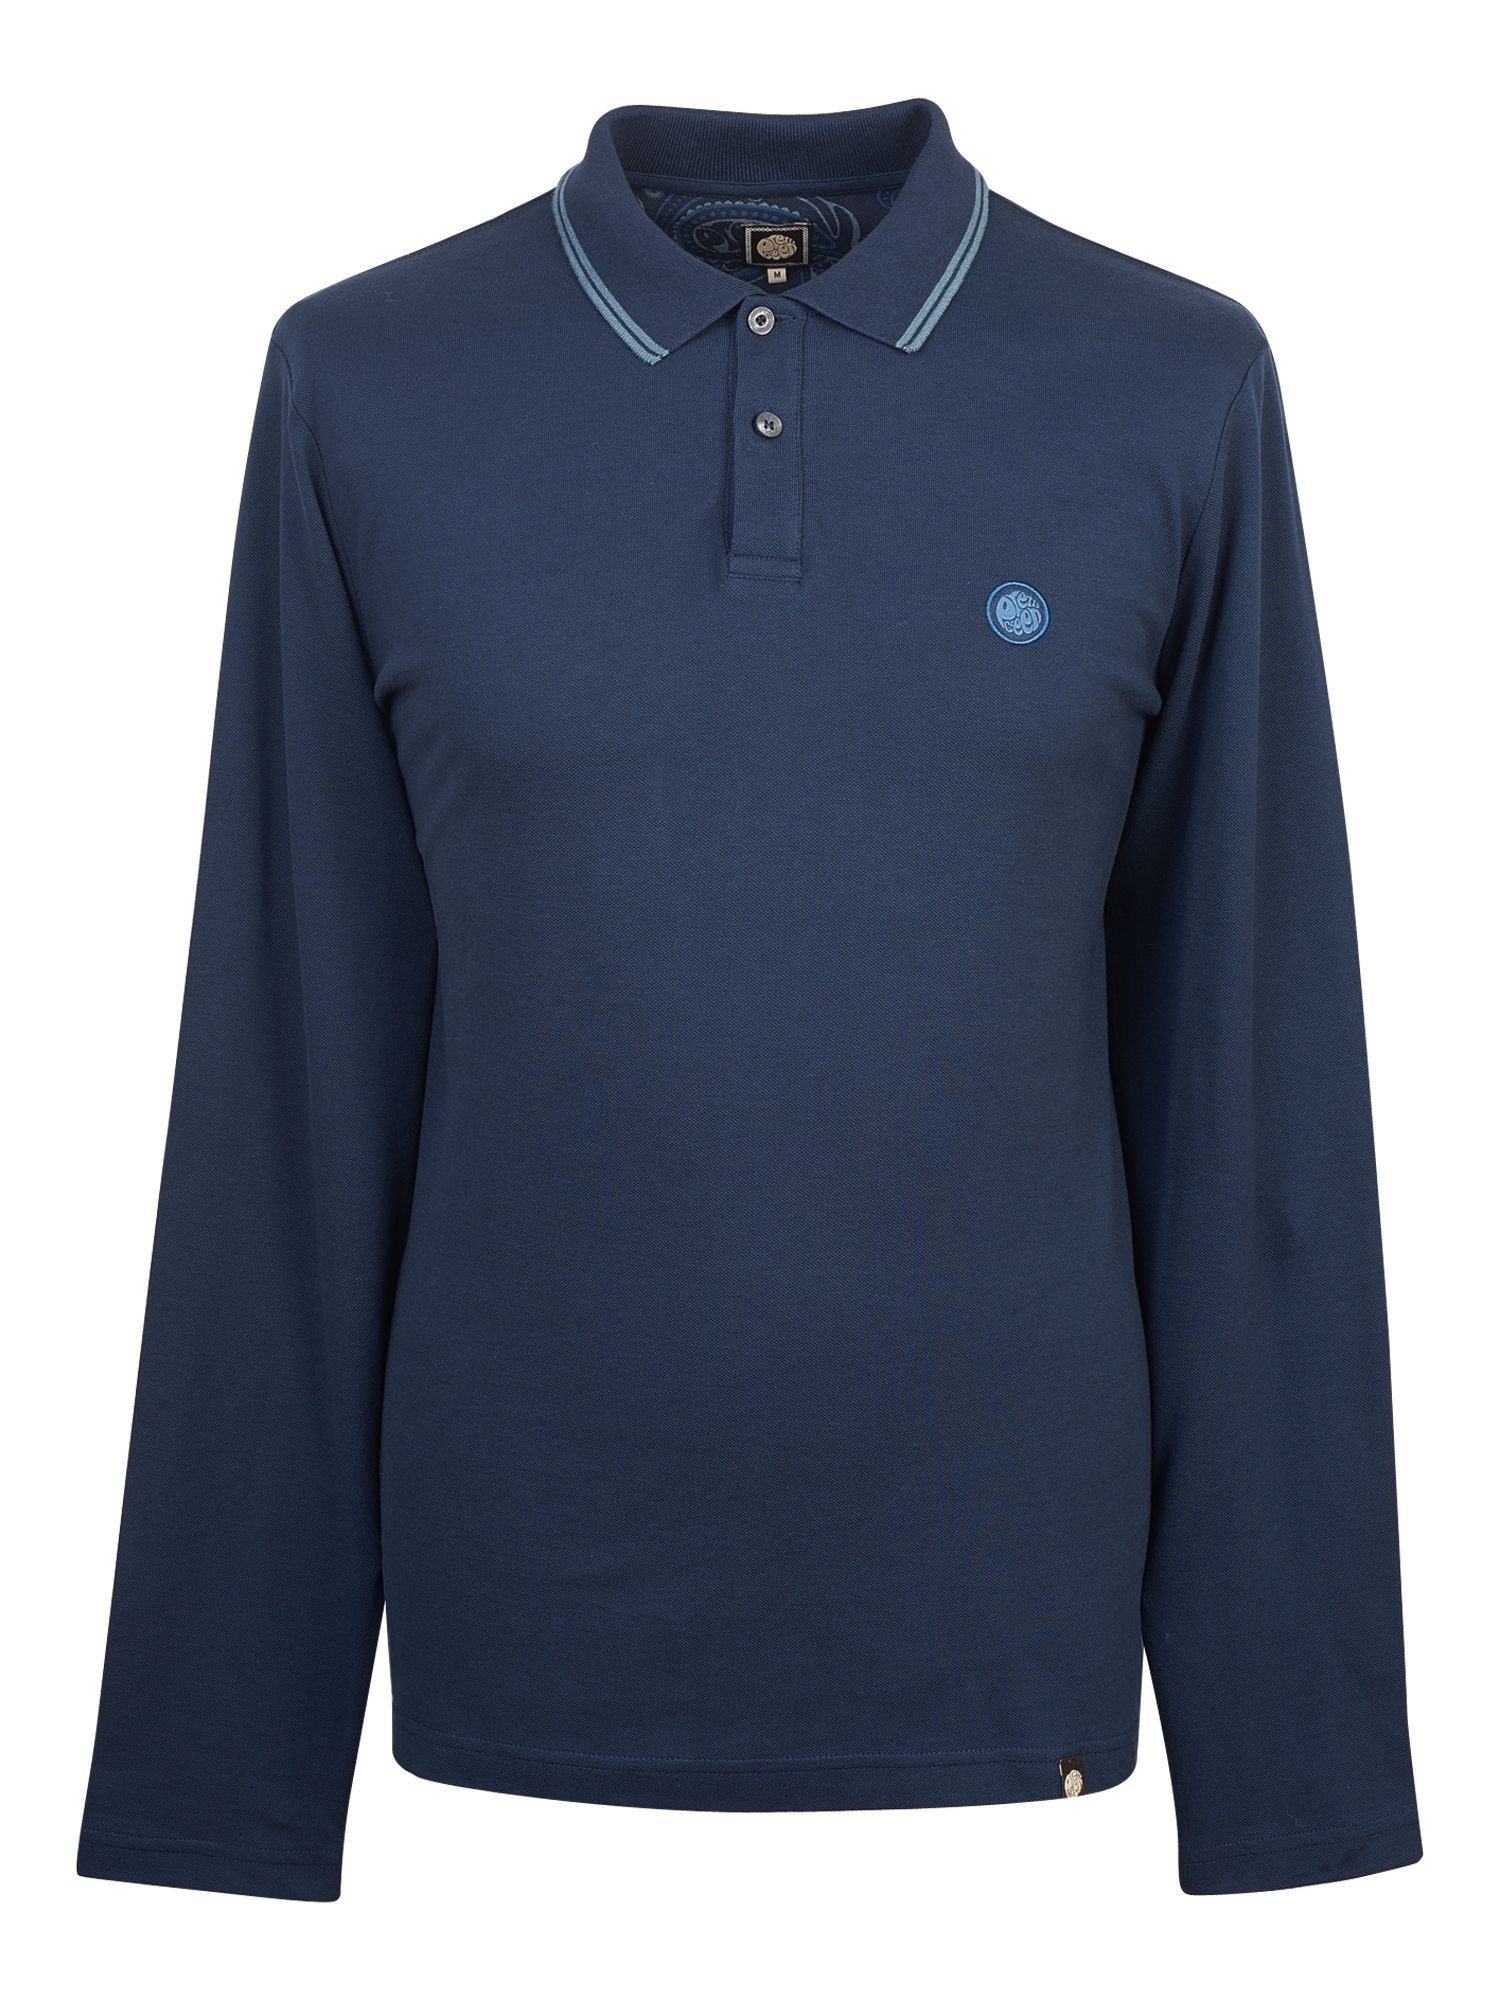 Men's Pretty Green Long Sleeve Tipped Pique Polo Shirt, Blue